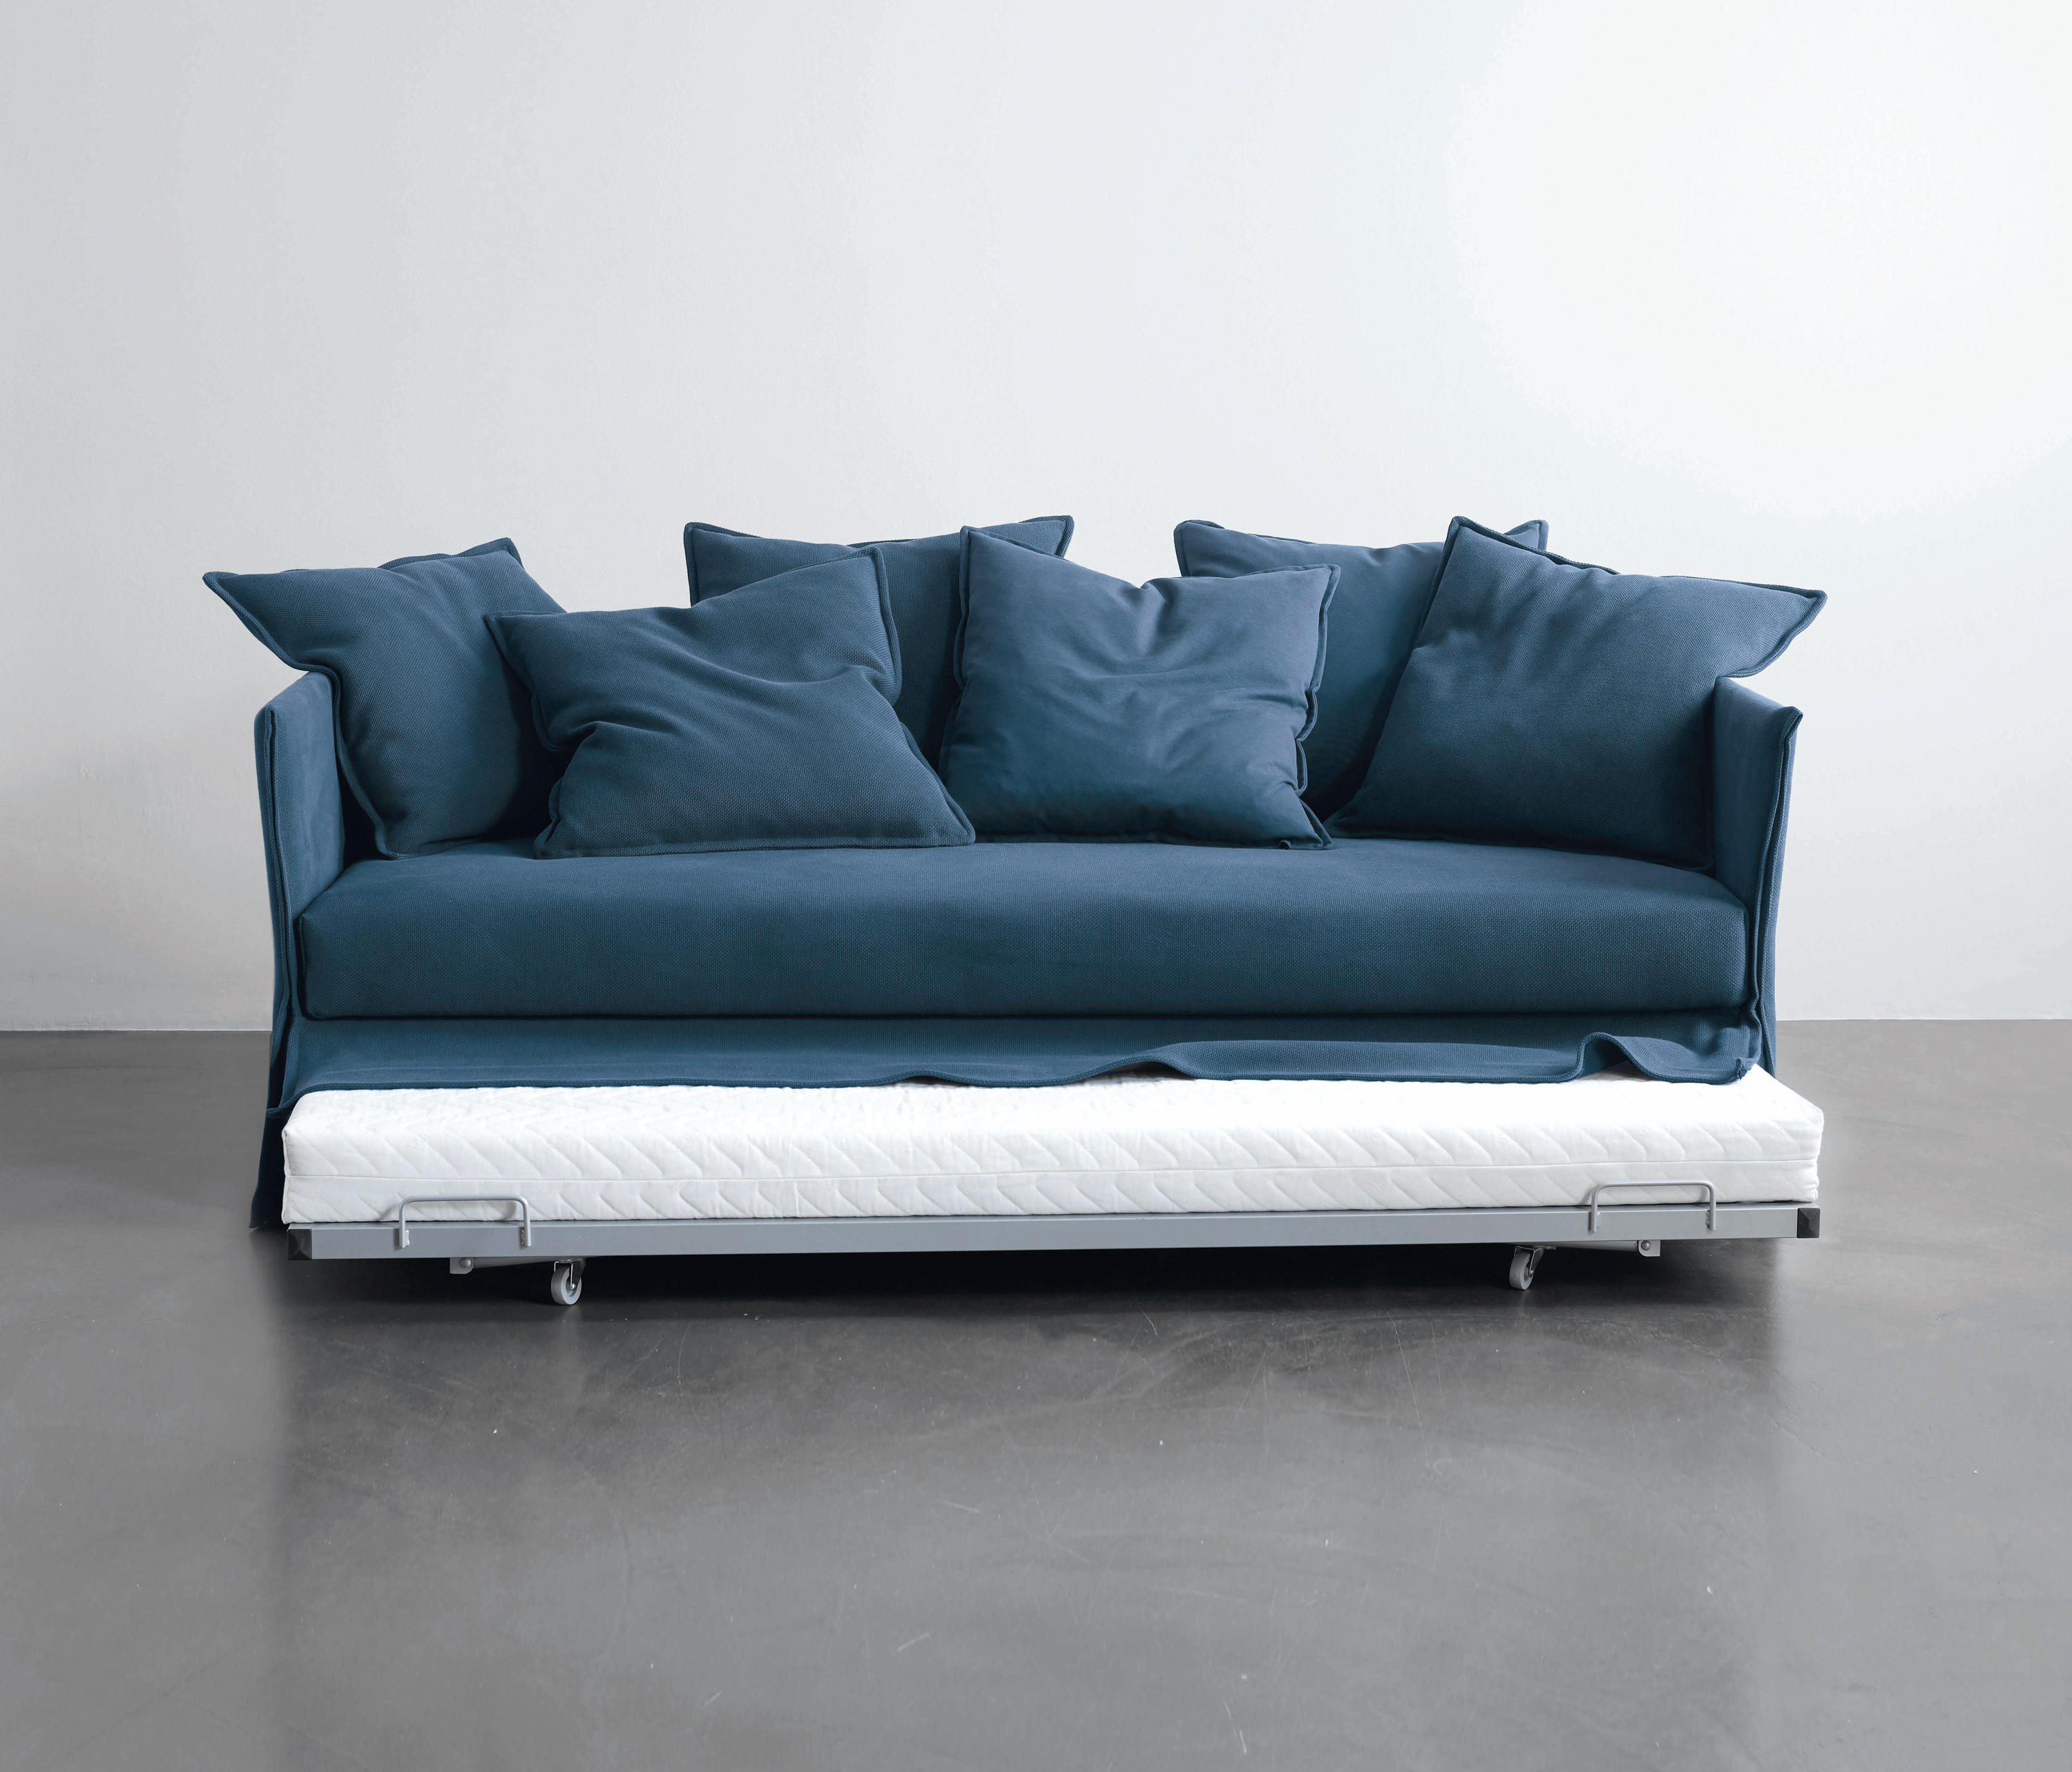 Fox sofa bed sofa beds from meridiani architonic fox sofa bed by meridiani sofa beds parisarafo Image collections